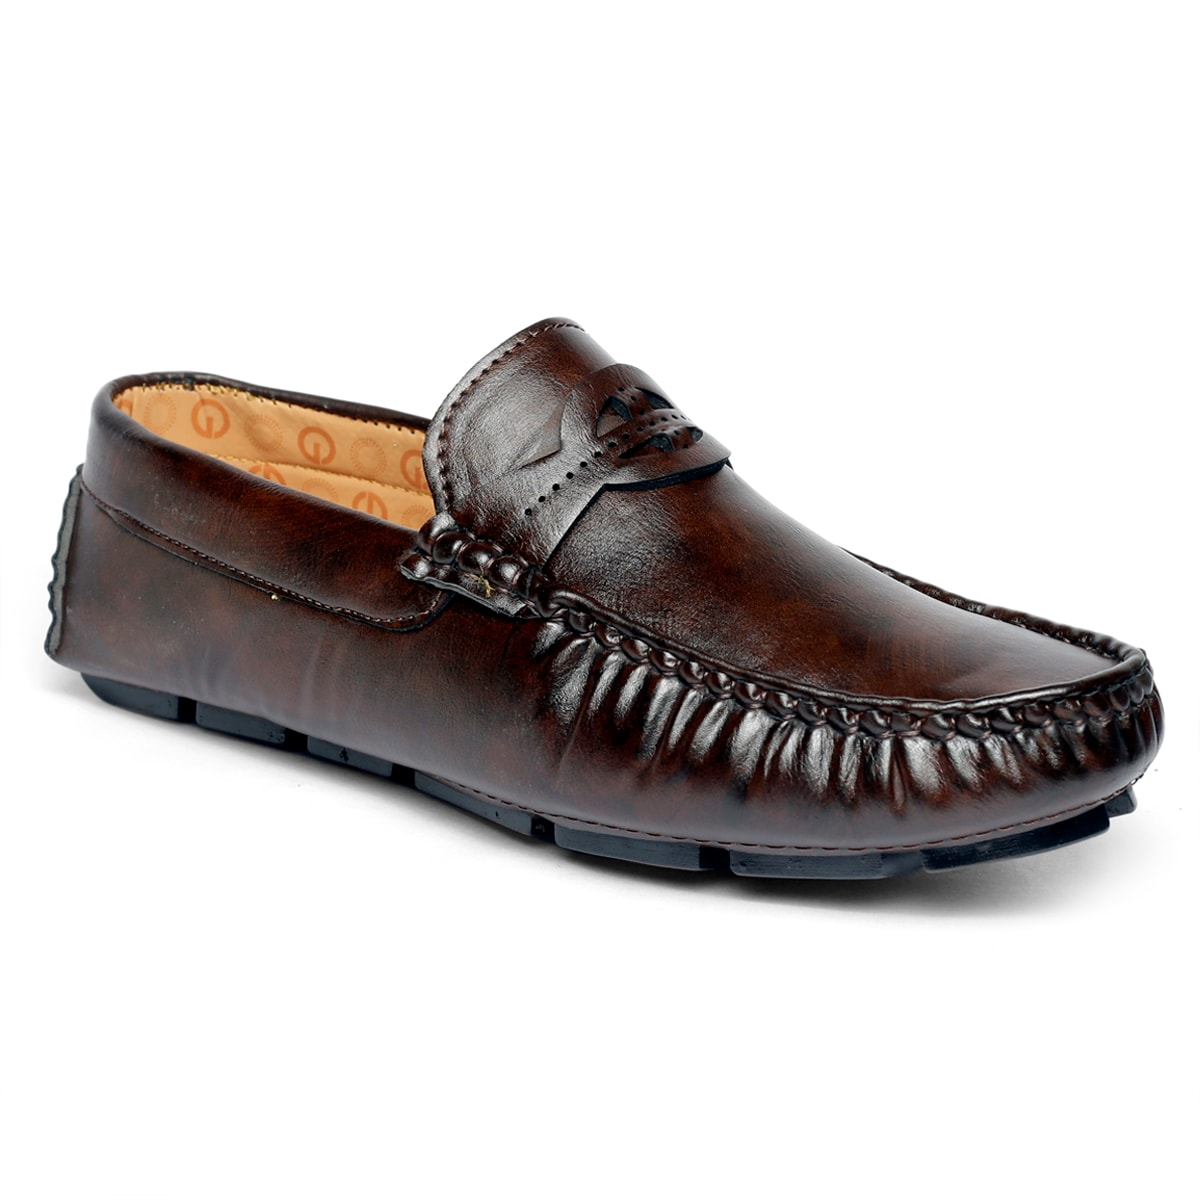 JK PORT COMFORTABLE, FASHIONABLE AND TRENDY LOAFERS JKPLF054BRN (BROWN,6-10,8 PAIR)